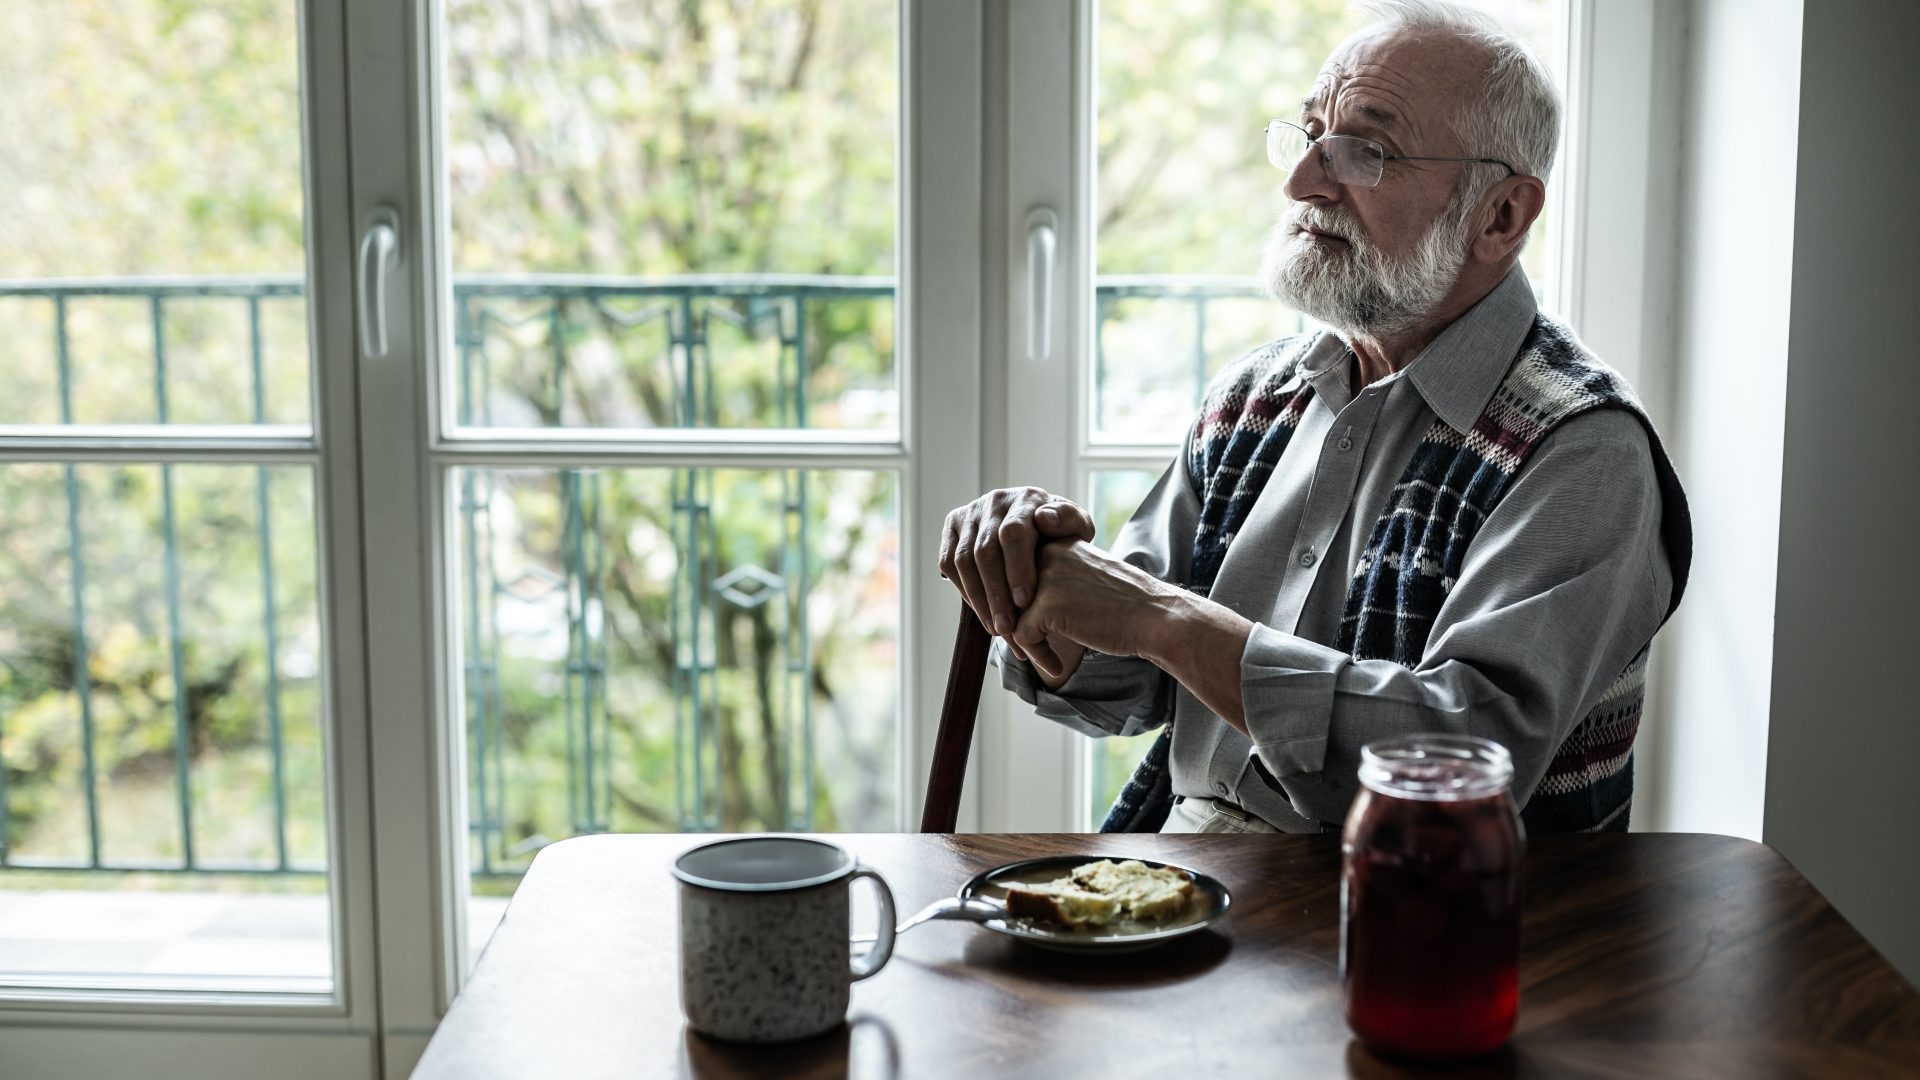 7 ways to help people who may be suffering with loneliness